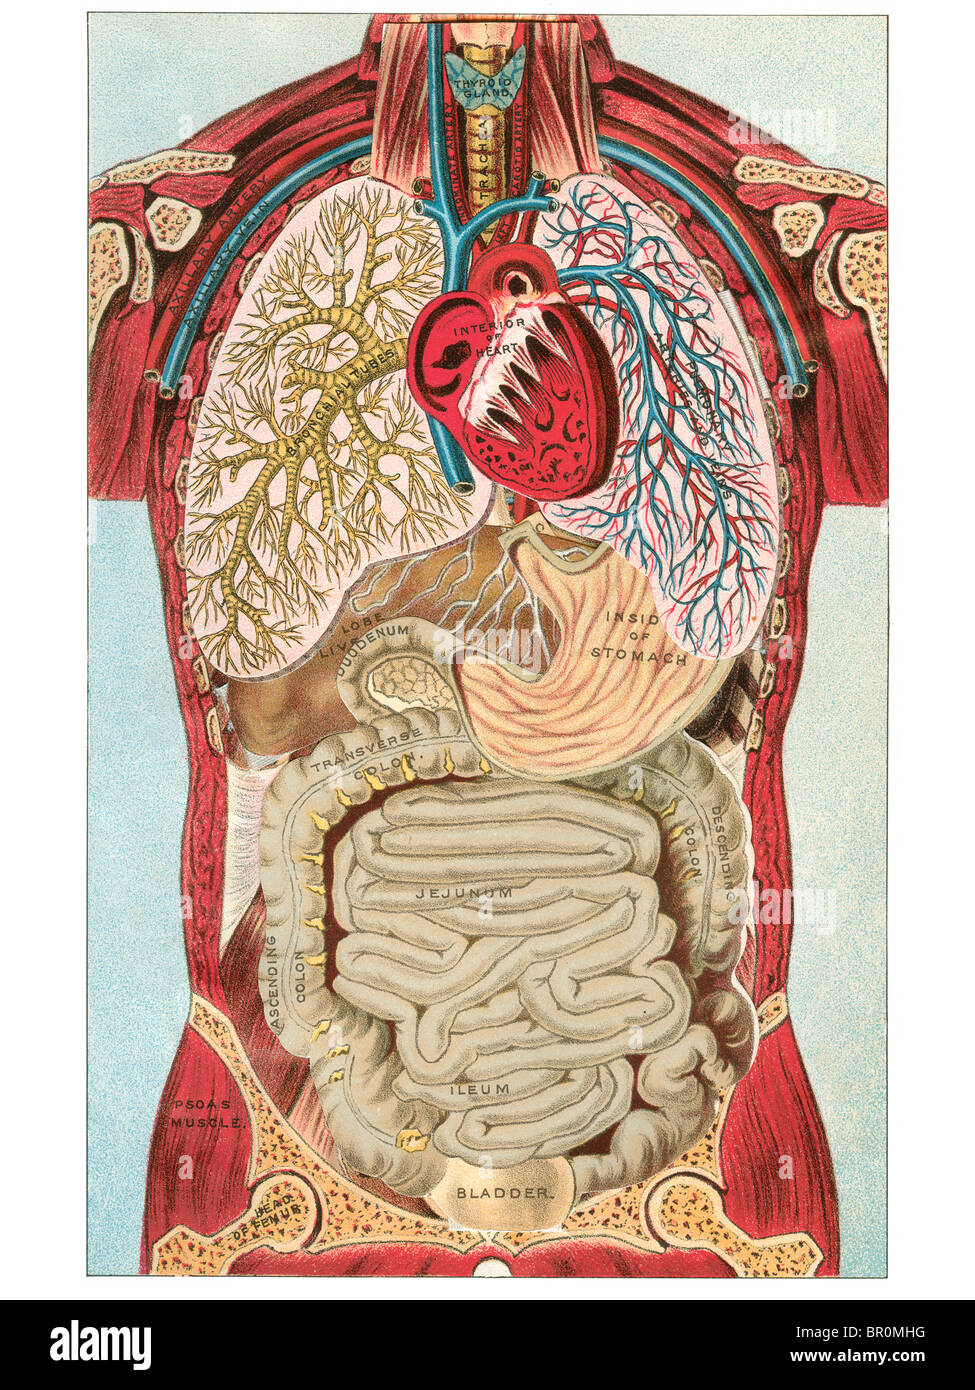 Organs Diagram Imágenes De Stock & Organs Diagram Fotos De Stock - Alamy